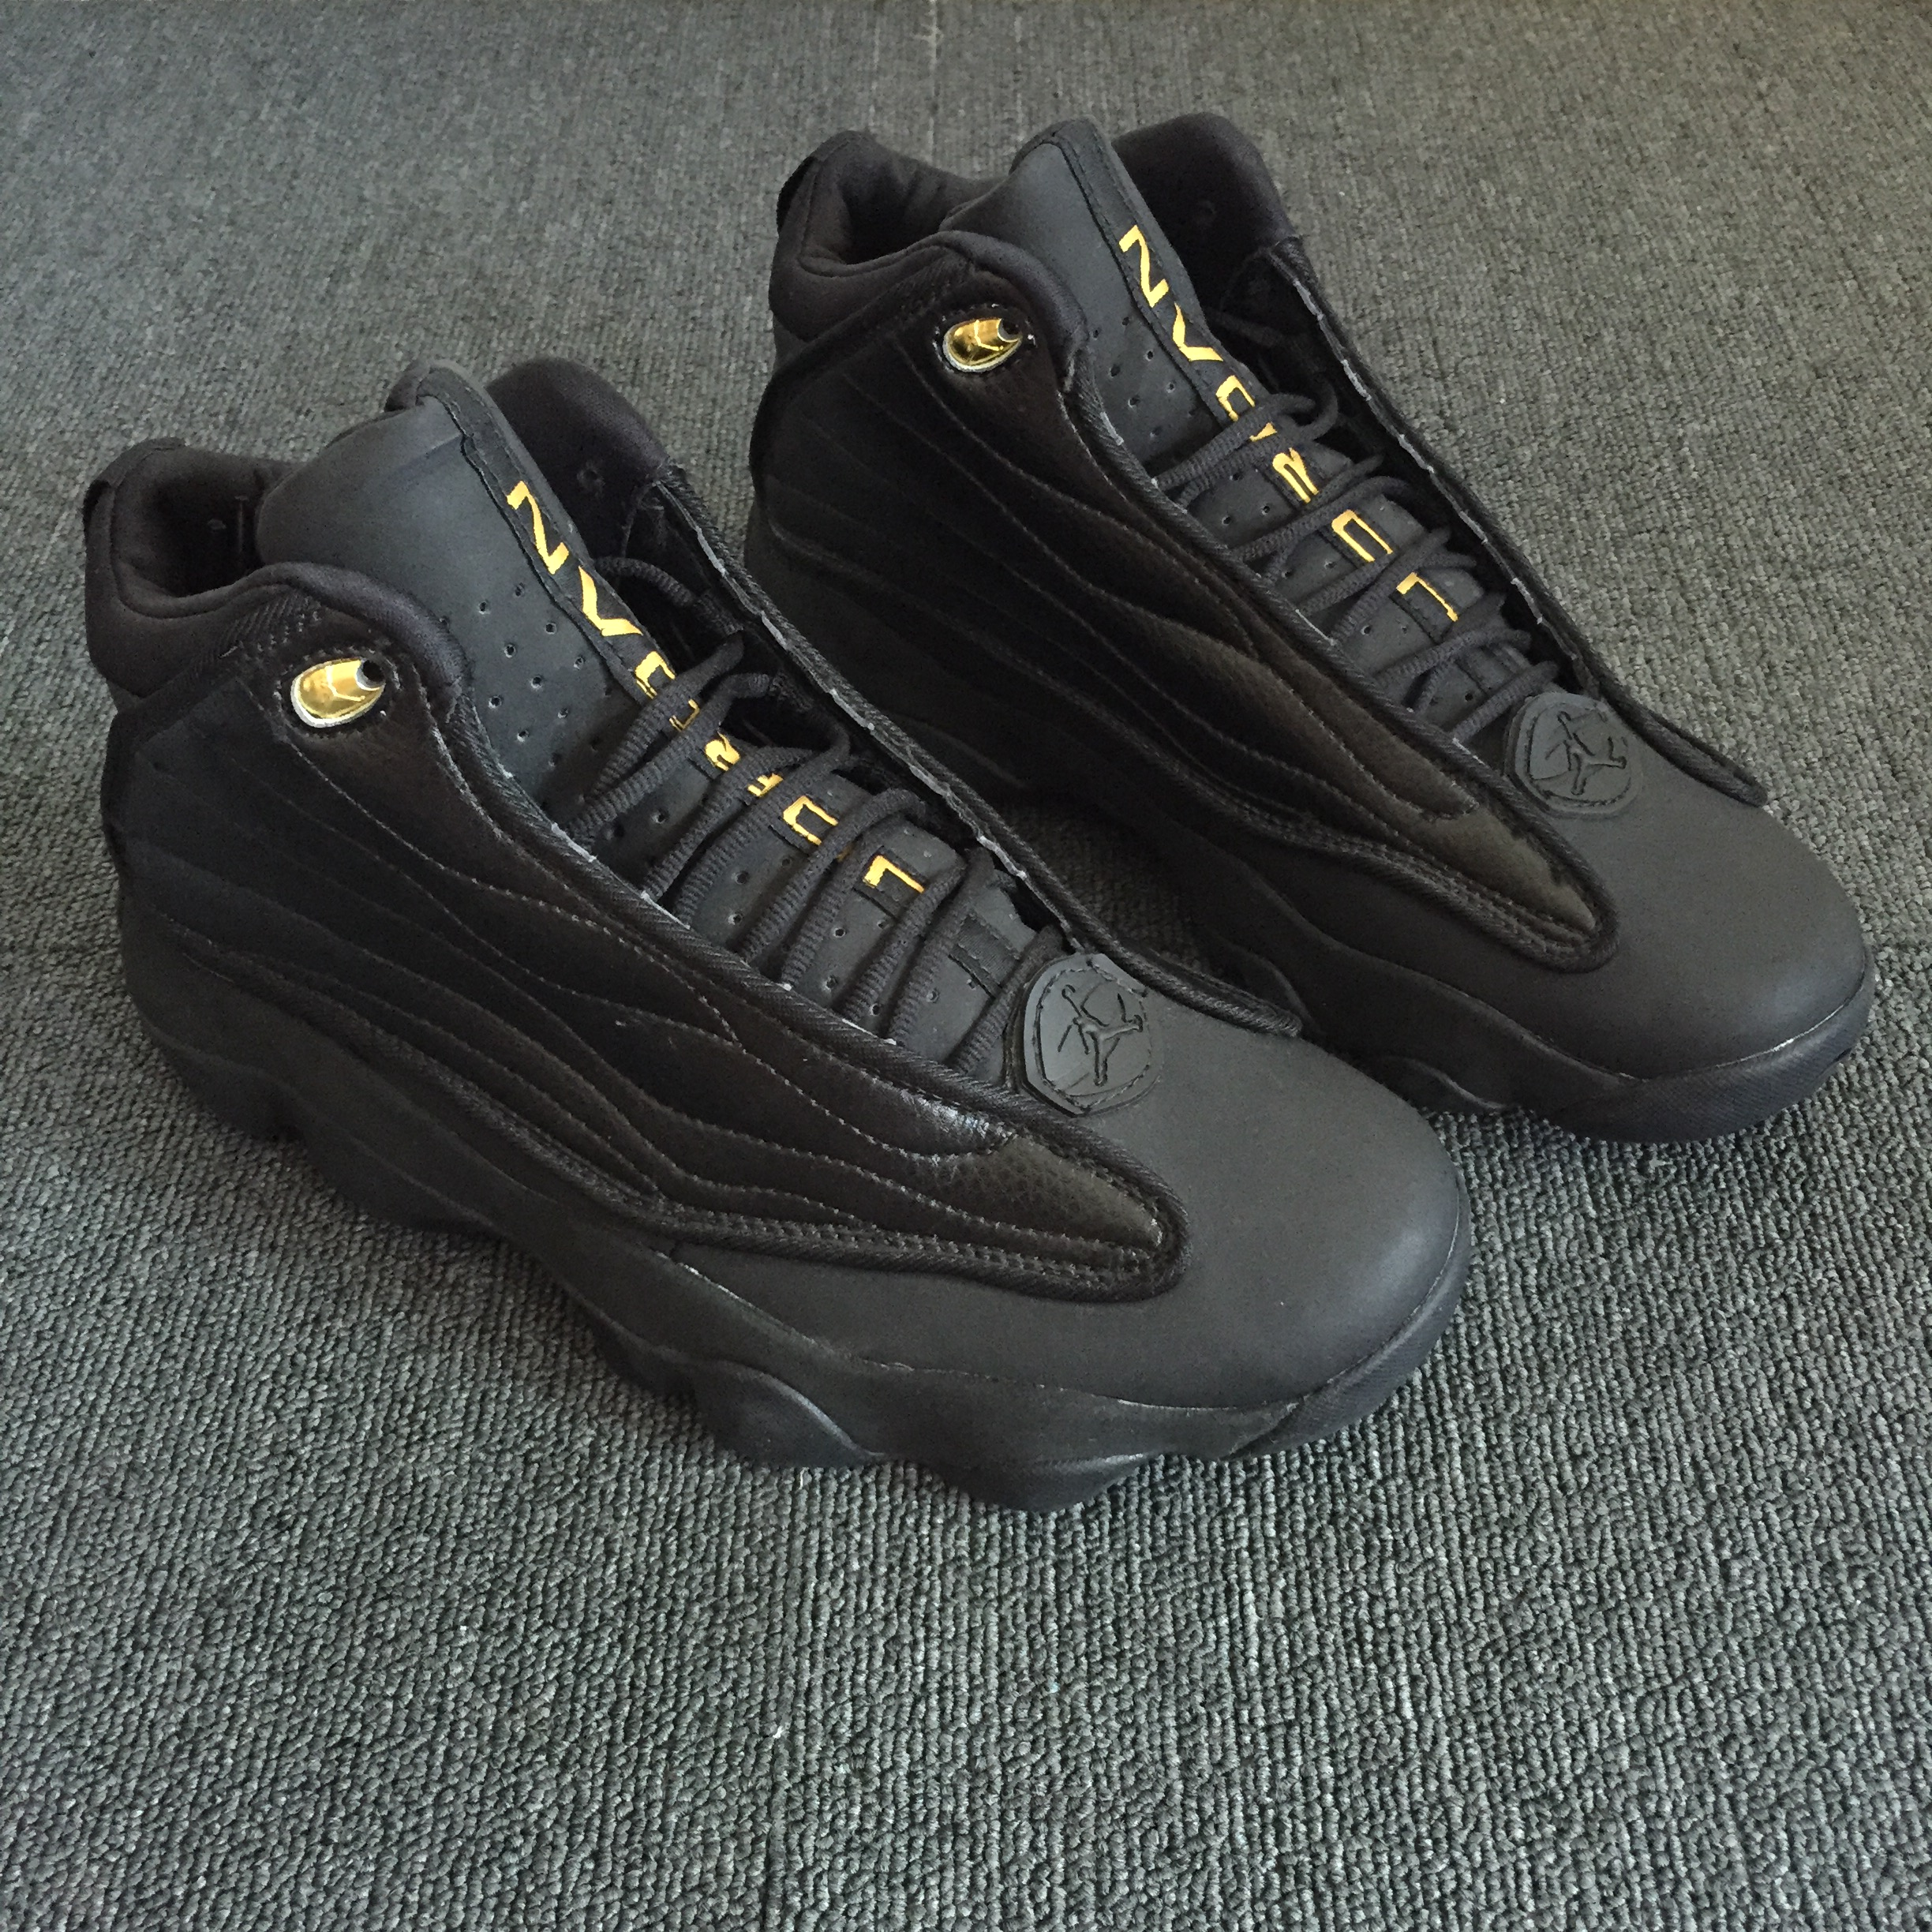 Air Jordan Pro Strong All Black Yellow Shoes